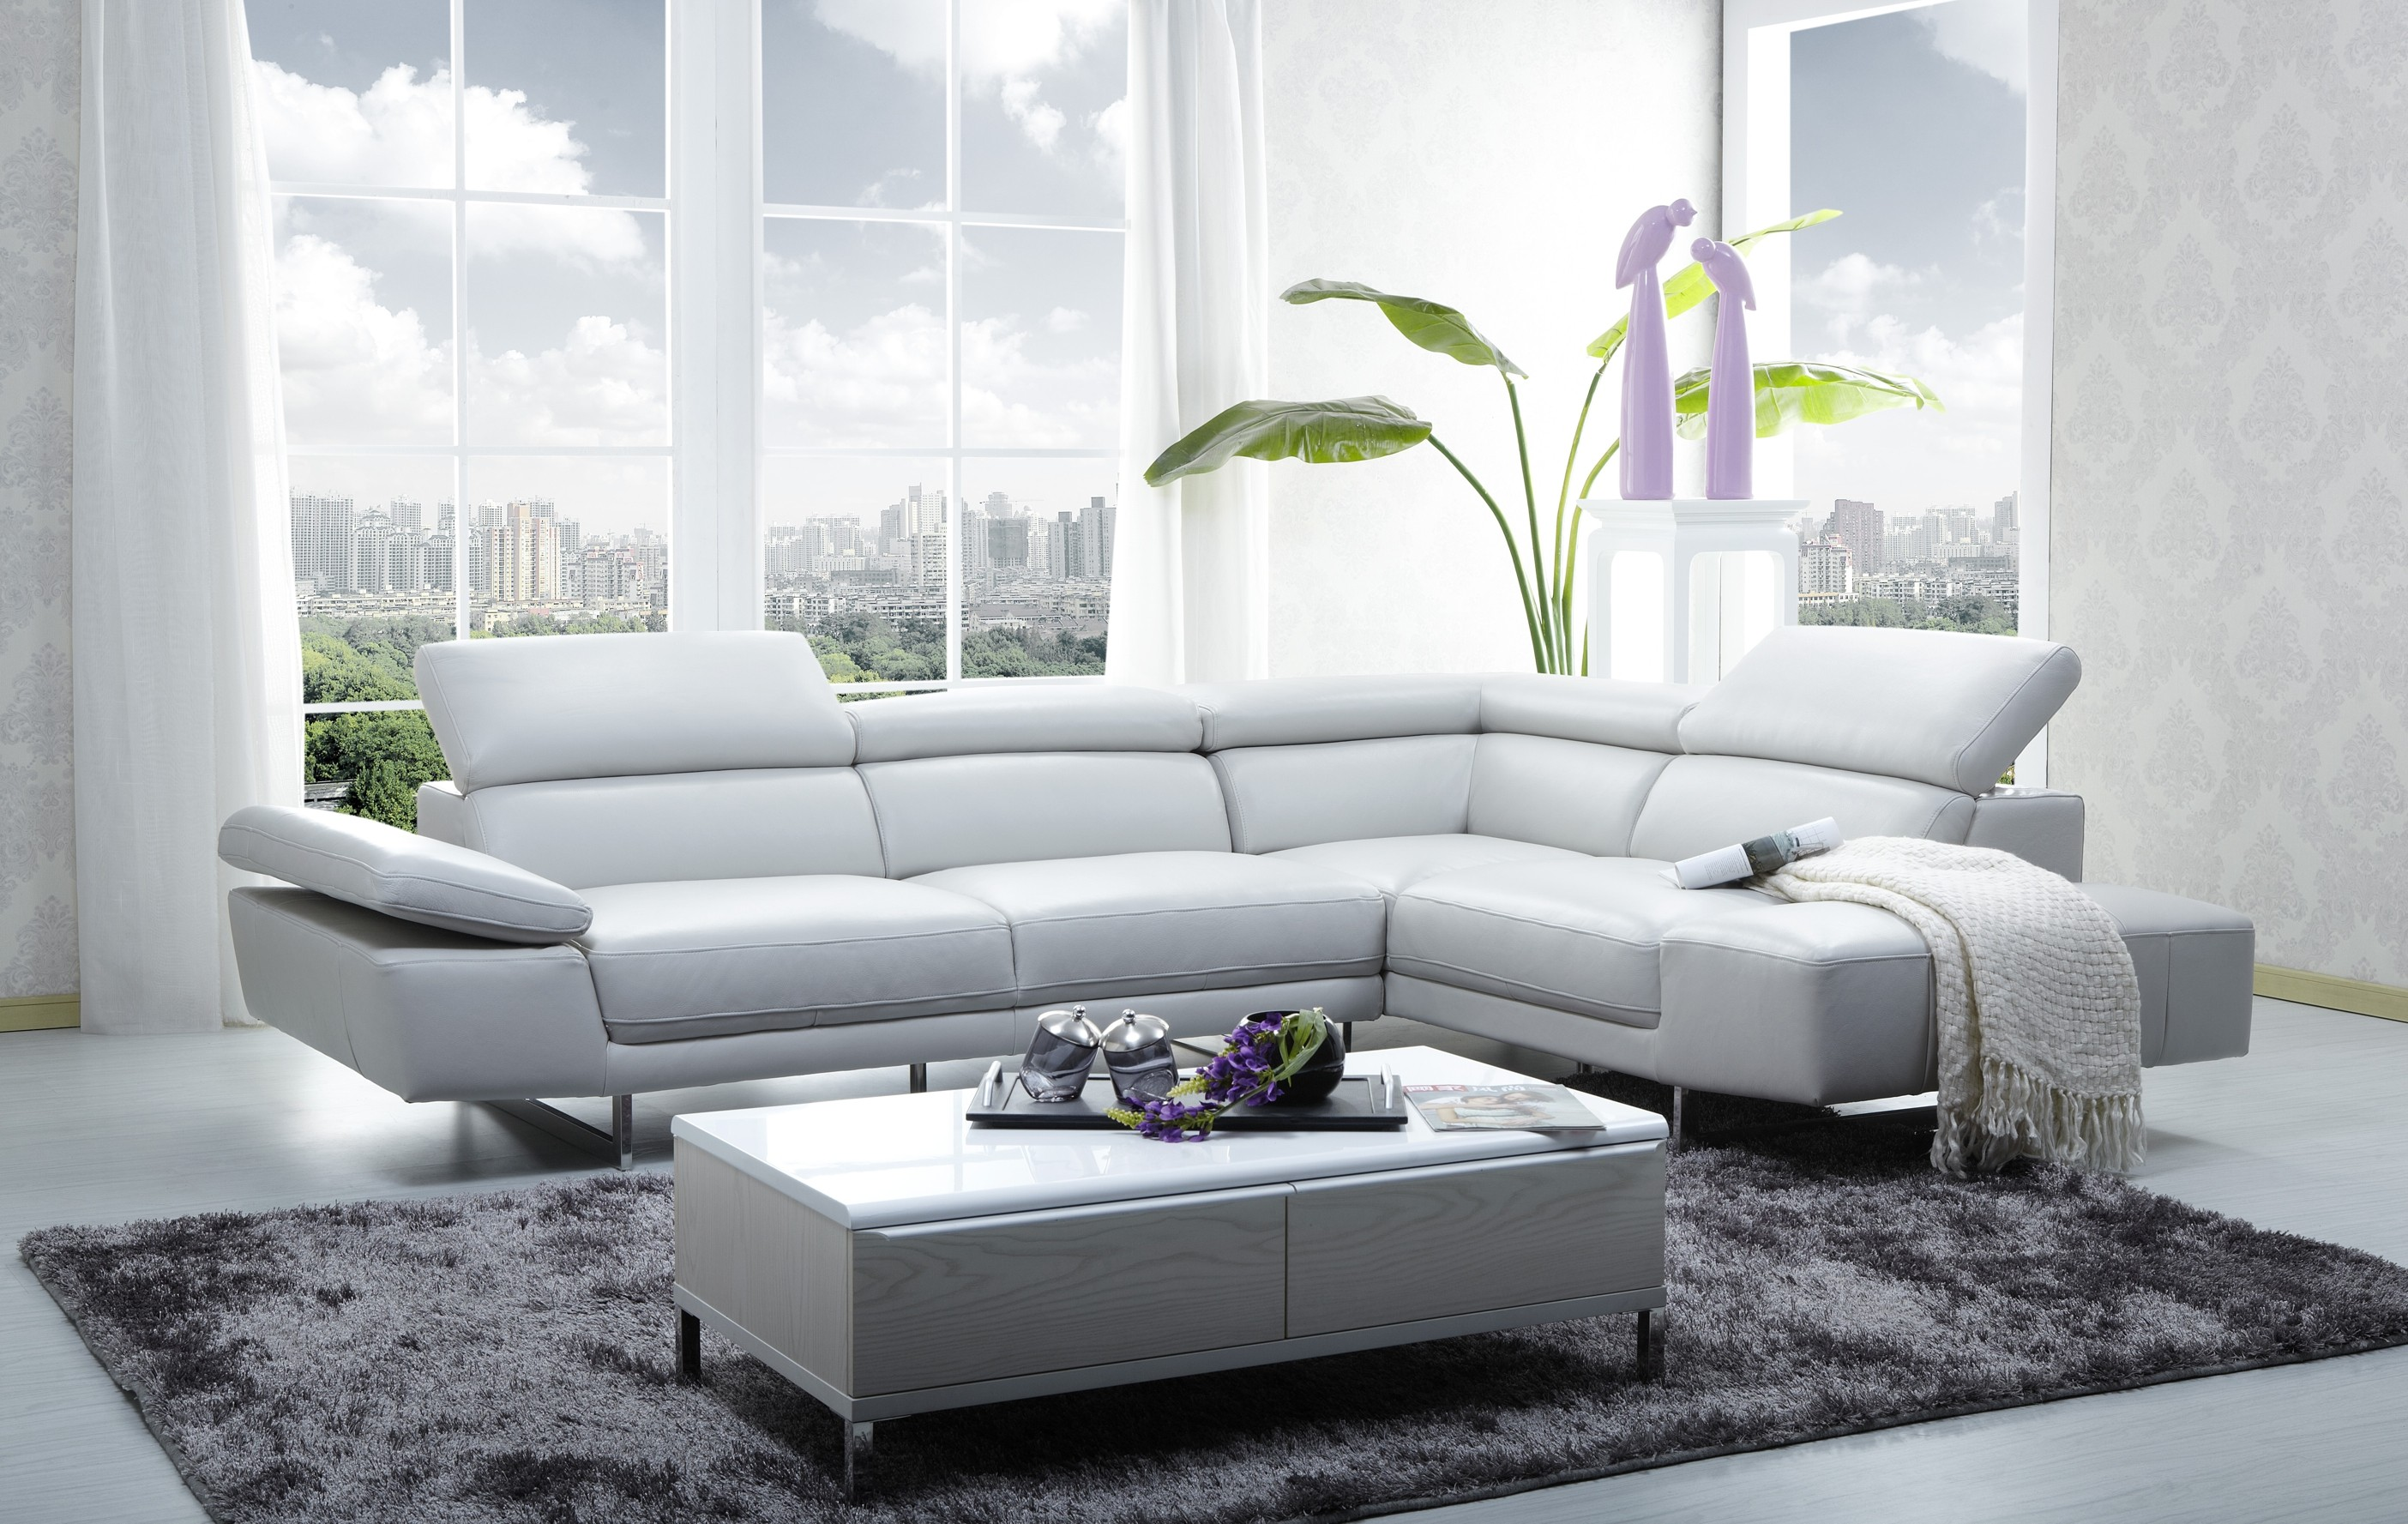 Small Apartment Design Interior With White Sectional Sofa Beds ...